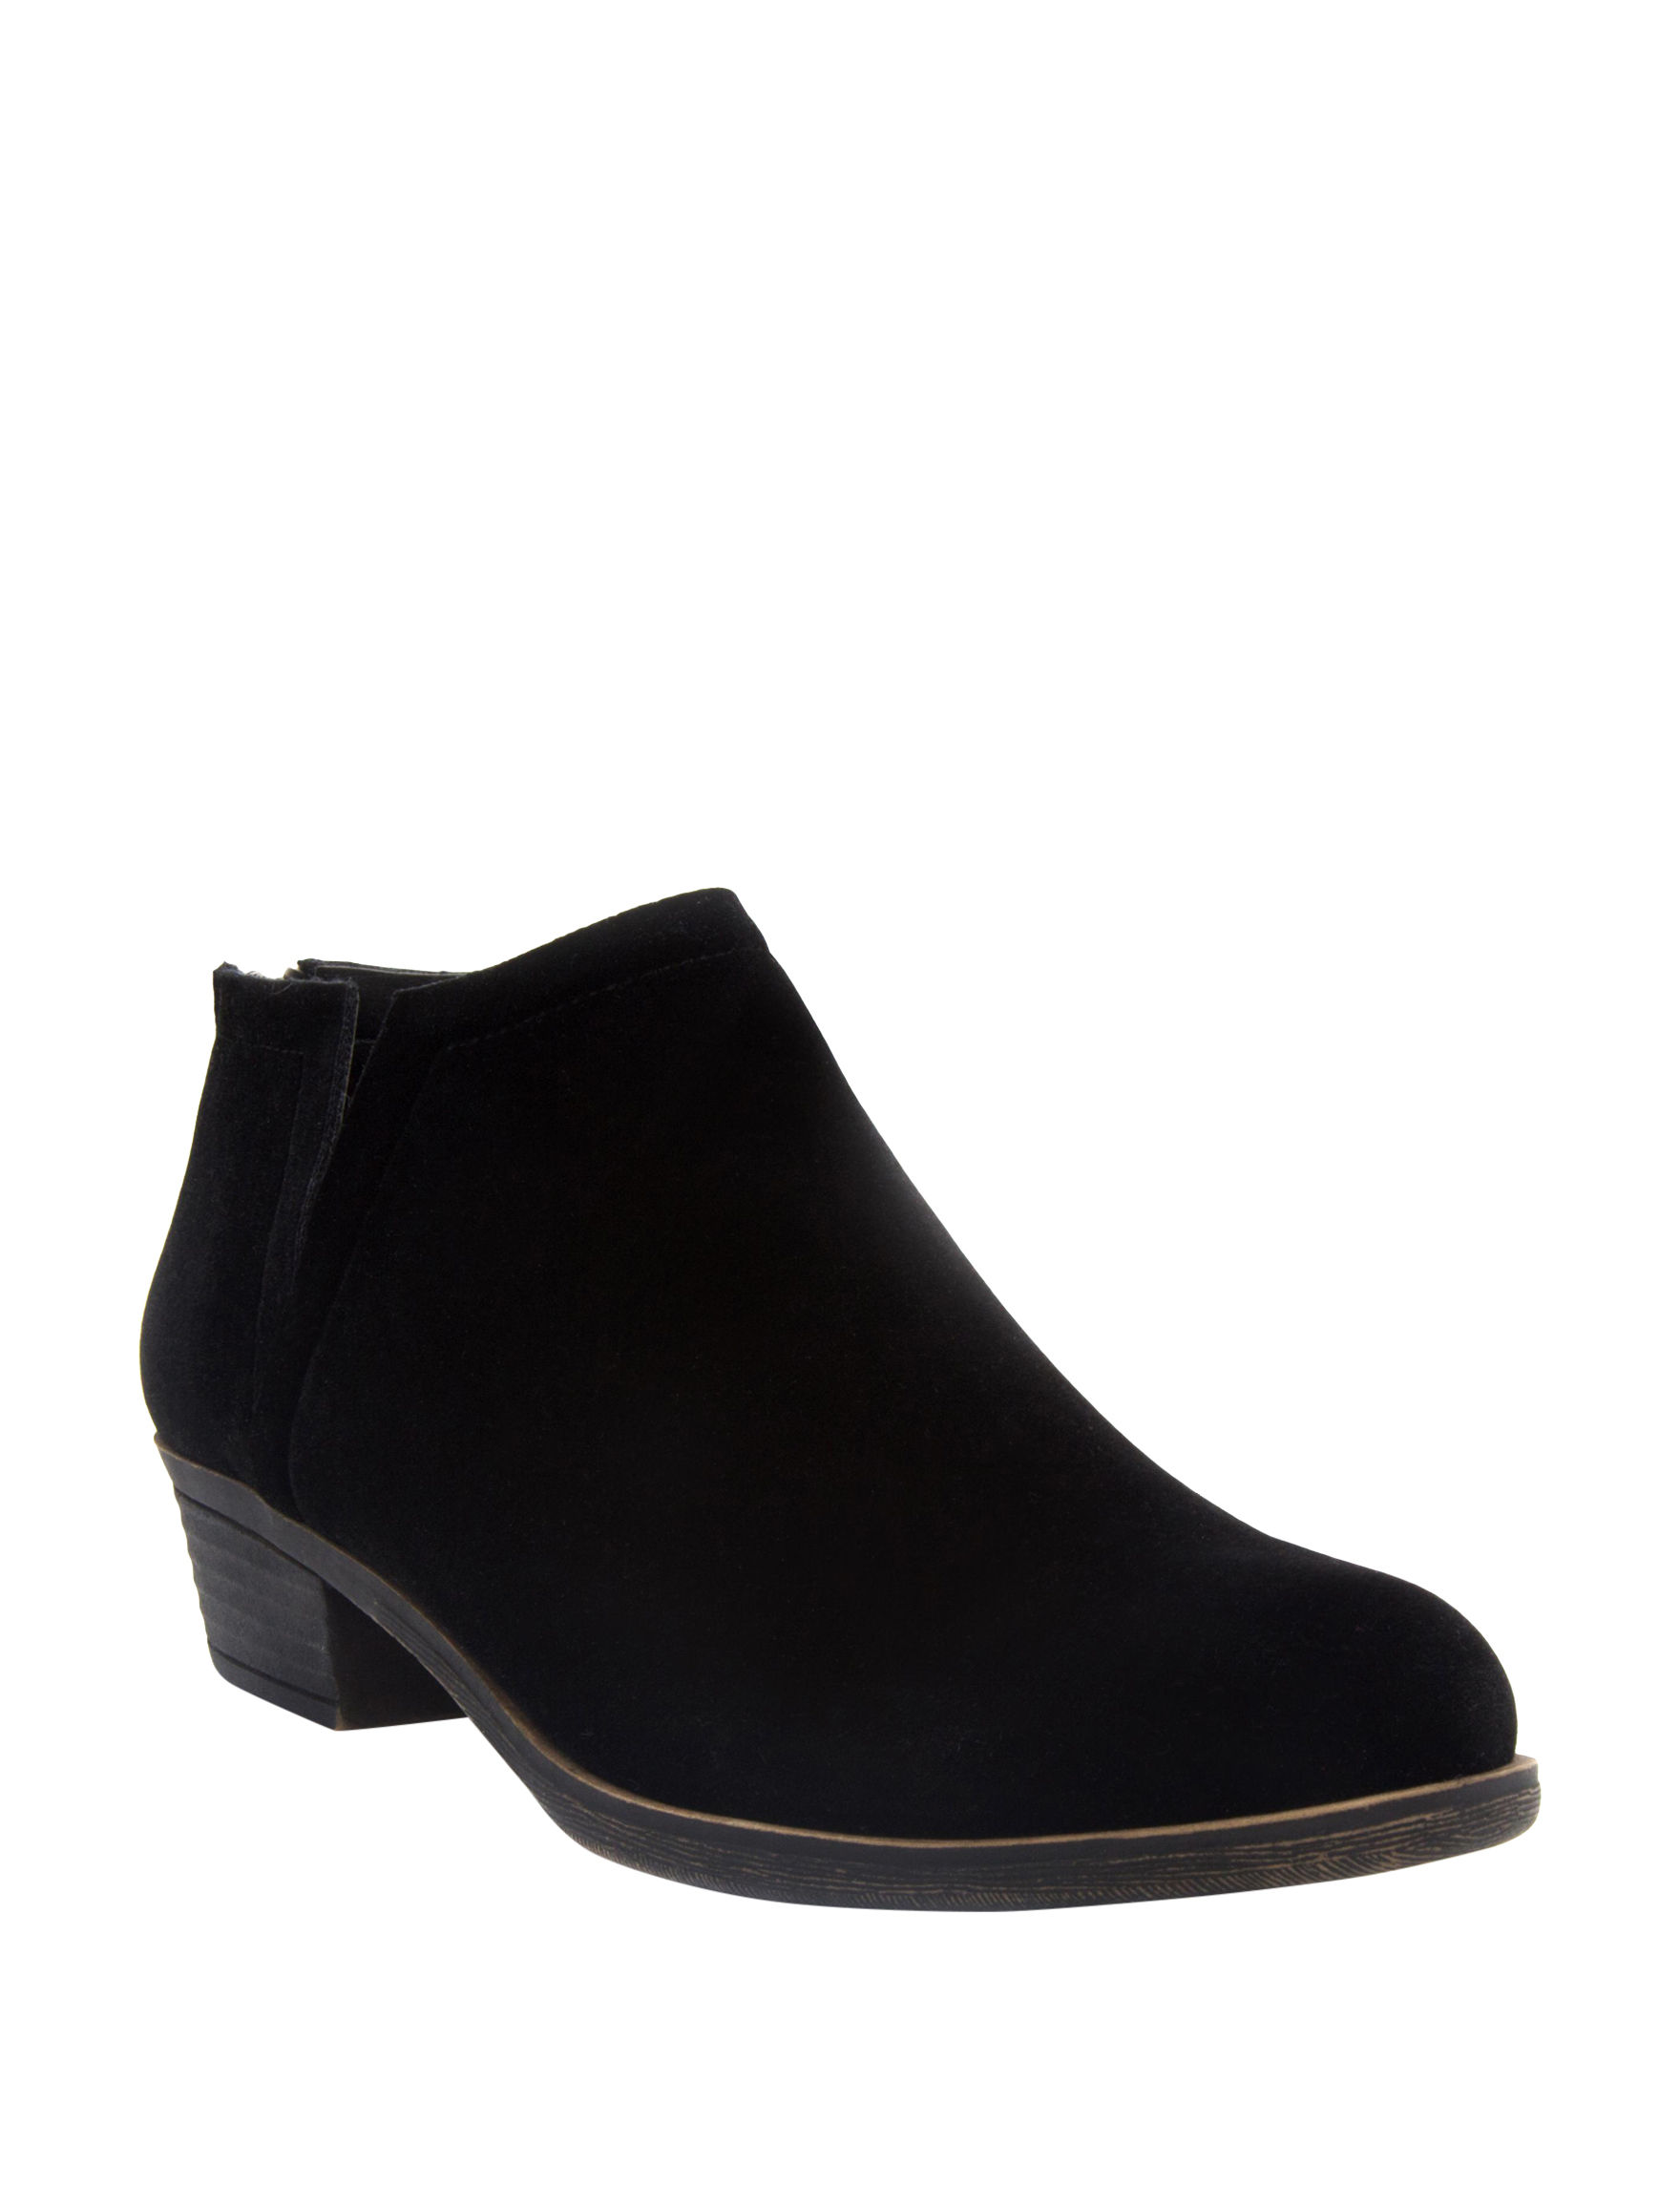 Sugar Black Velvet Ankle Boots & Booties